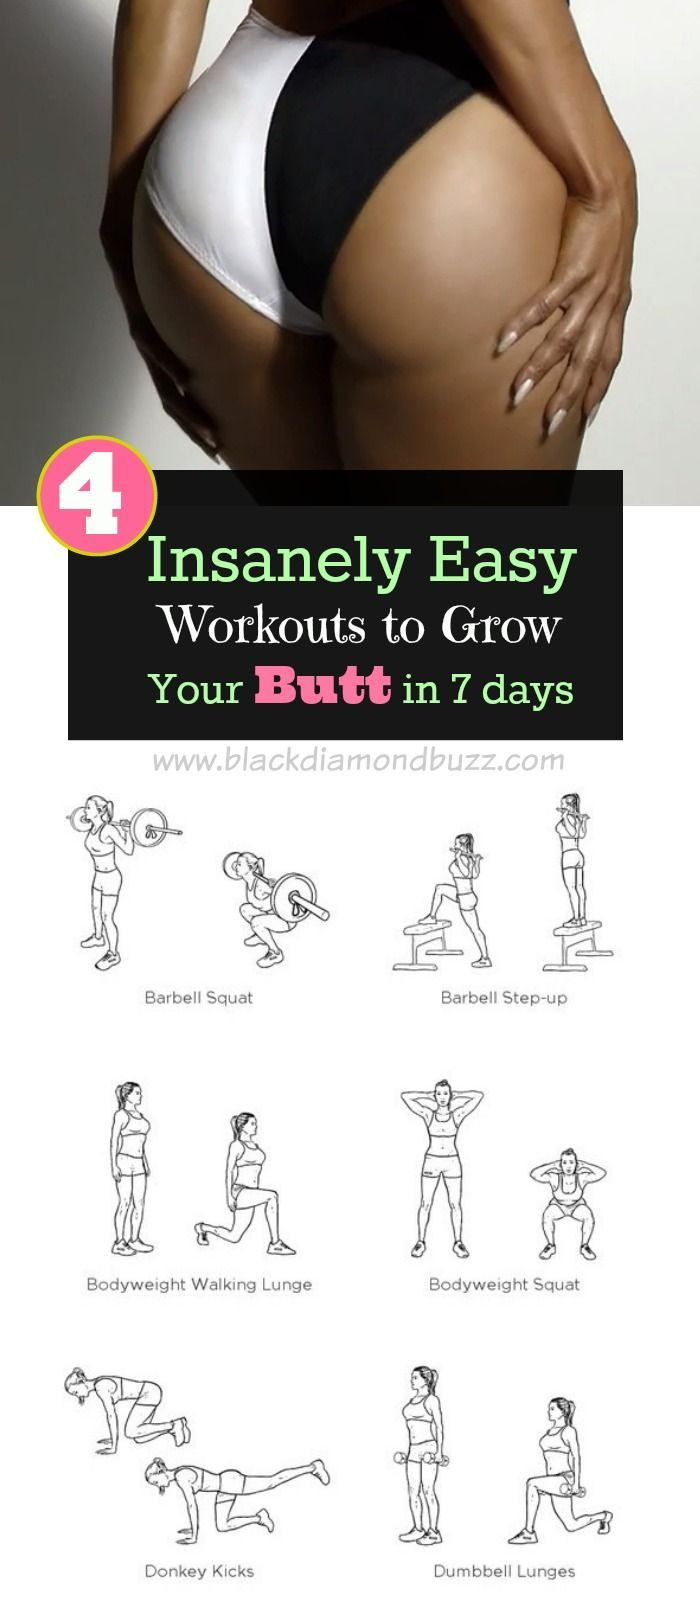 Hack 4 Insanely Easy Workouts To Grow Your Butt In 7 Days-5552